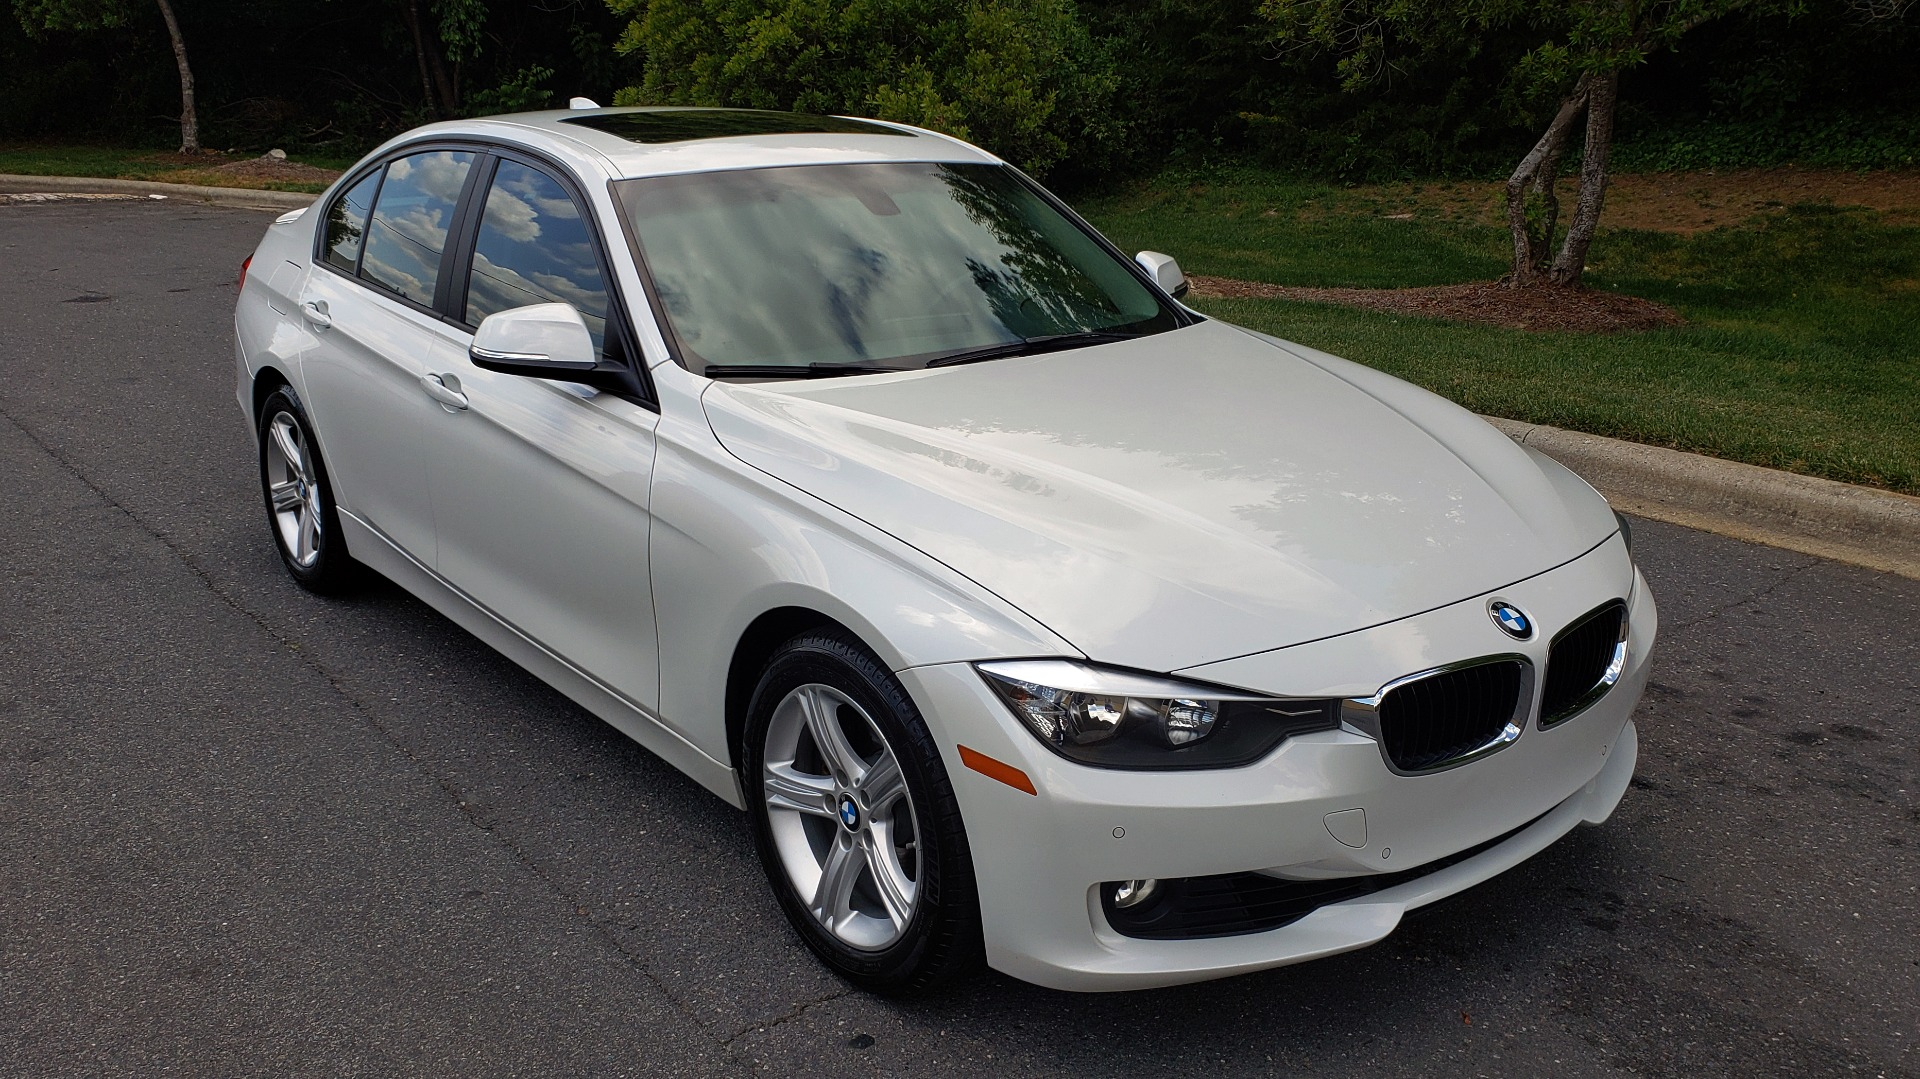 Used 2015 BMW 3 SERIES 328I PREMIUM / NAV / SUNROOF / HTD STS / DRIVER ASST / REARVIEW for sale Sold at Formula Imports in Charlotte NC 28227 4